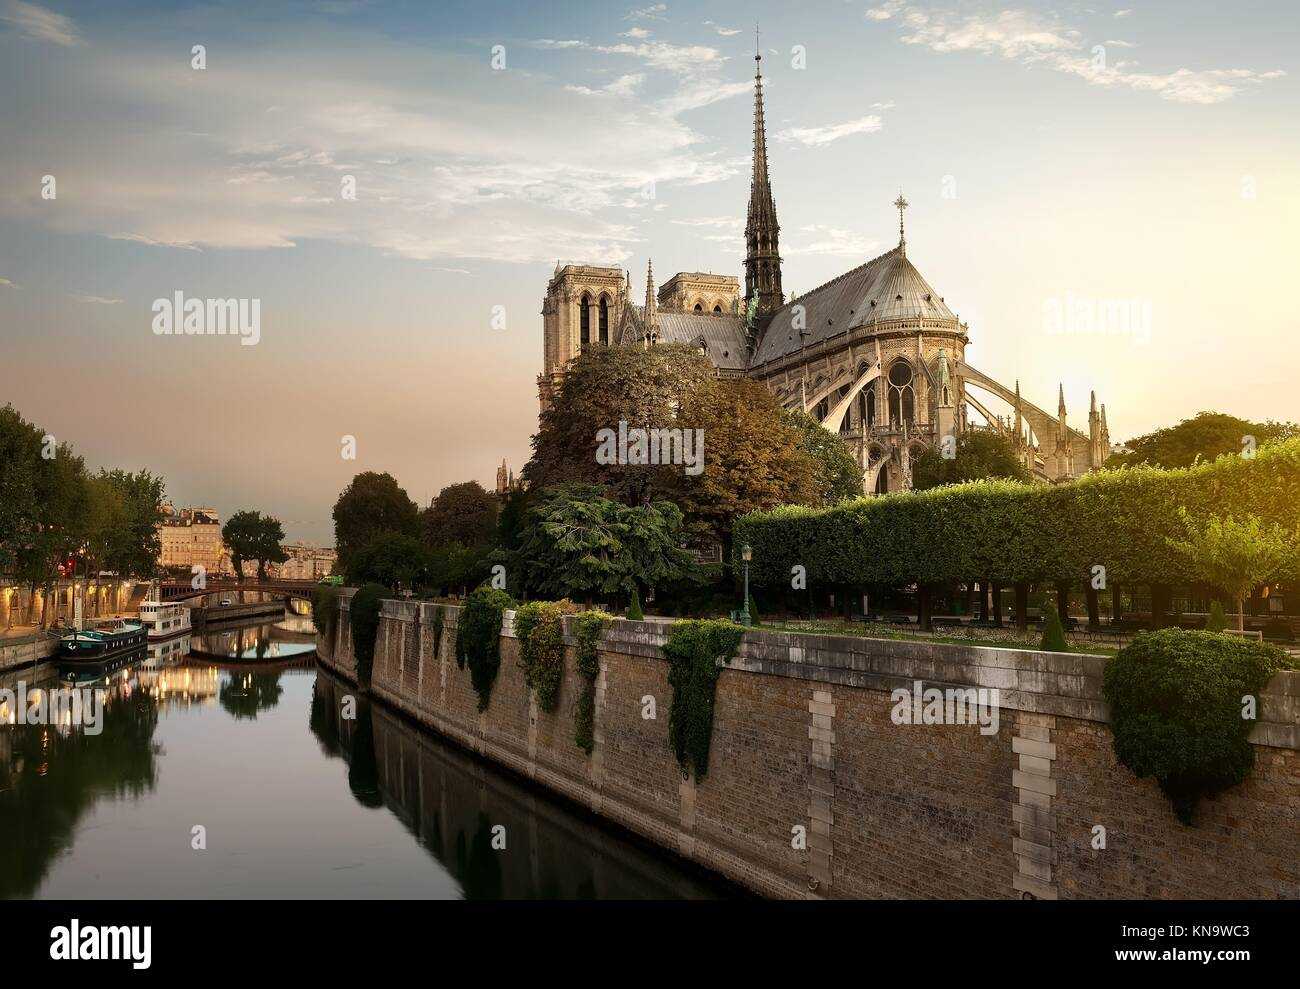 Sunset over Notre Dame de Paris, France. - Stock Image